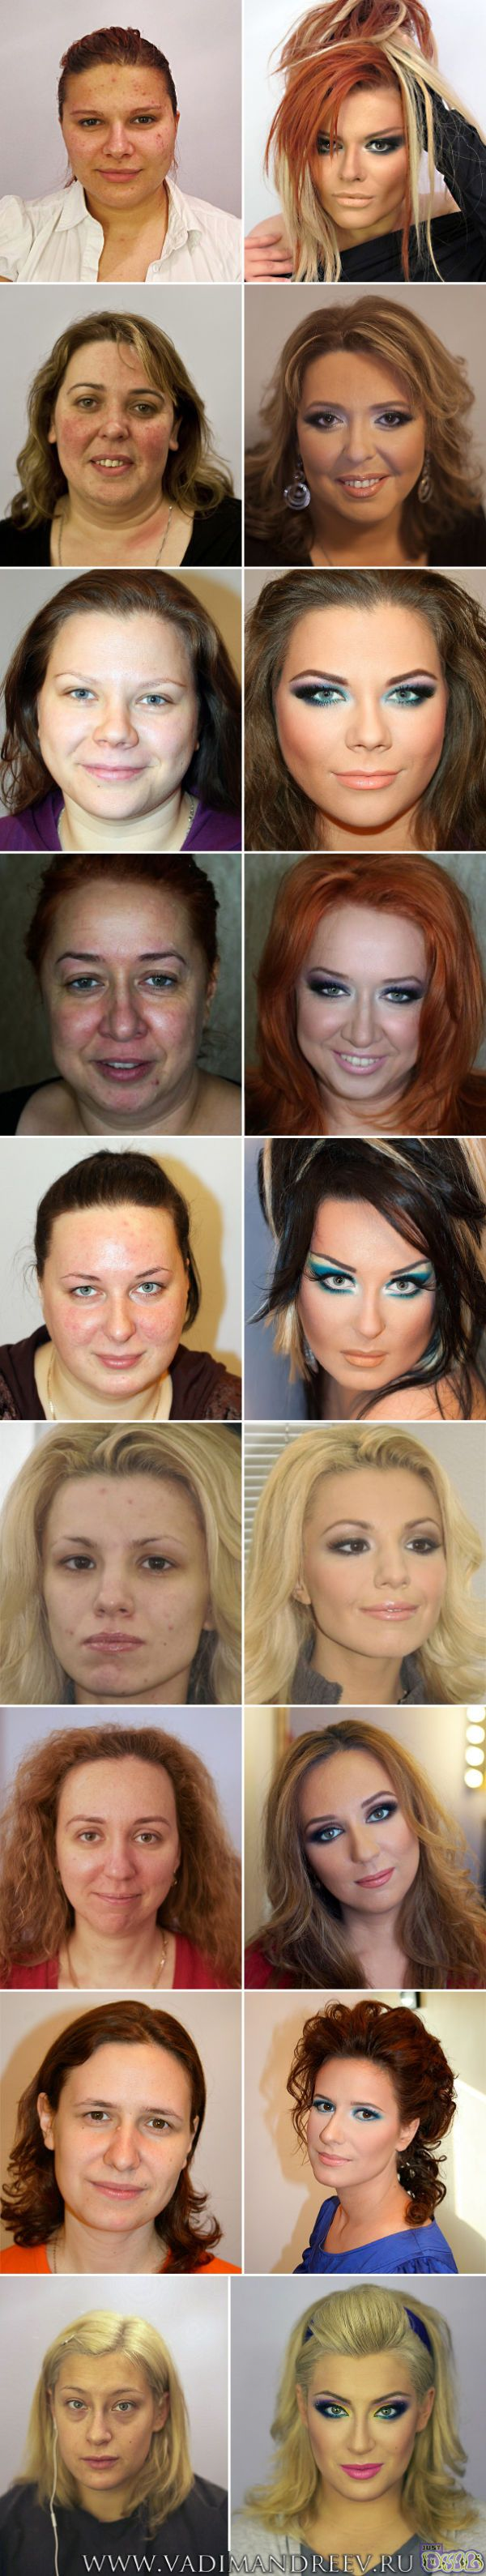 Before and after professional makeup, Just shows the wonders of makeup and how just about anyone can look amazing!